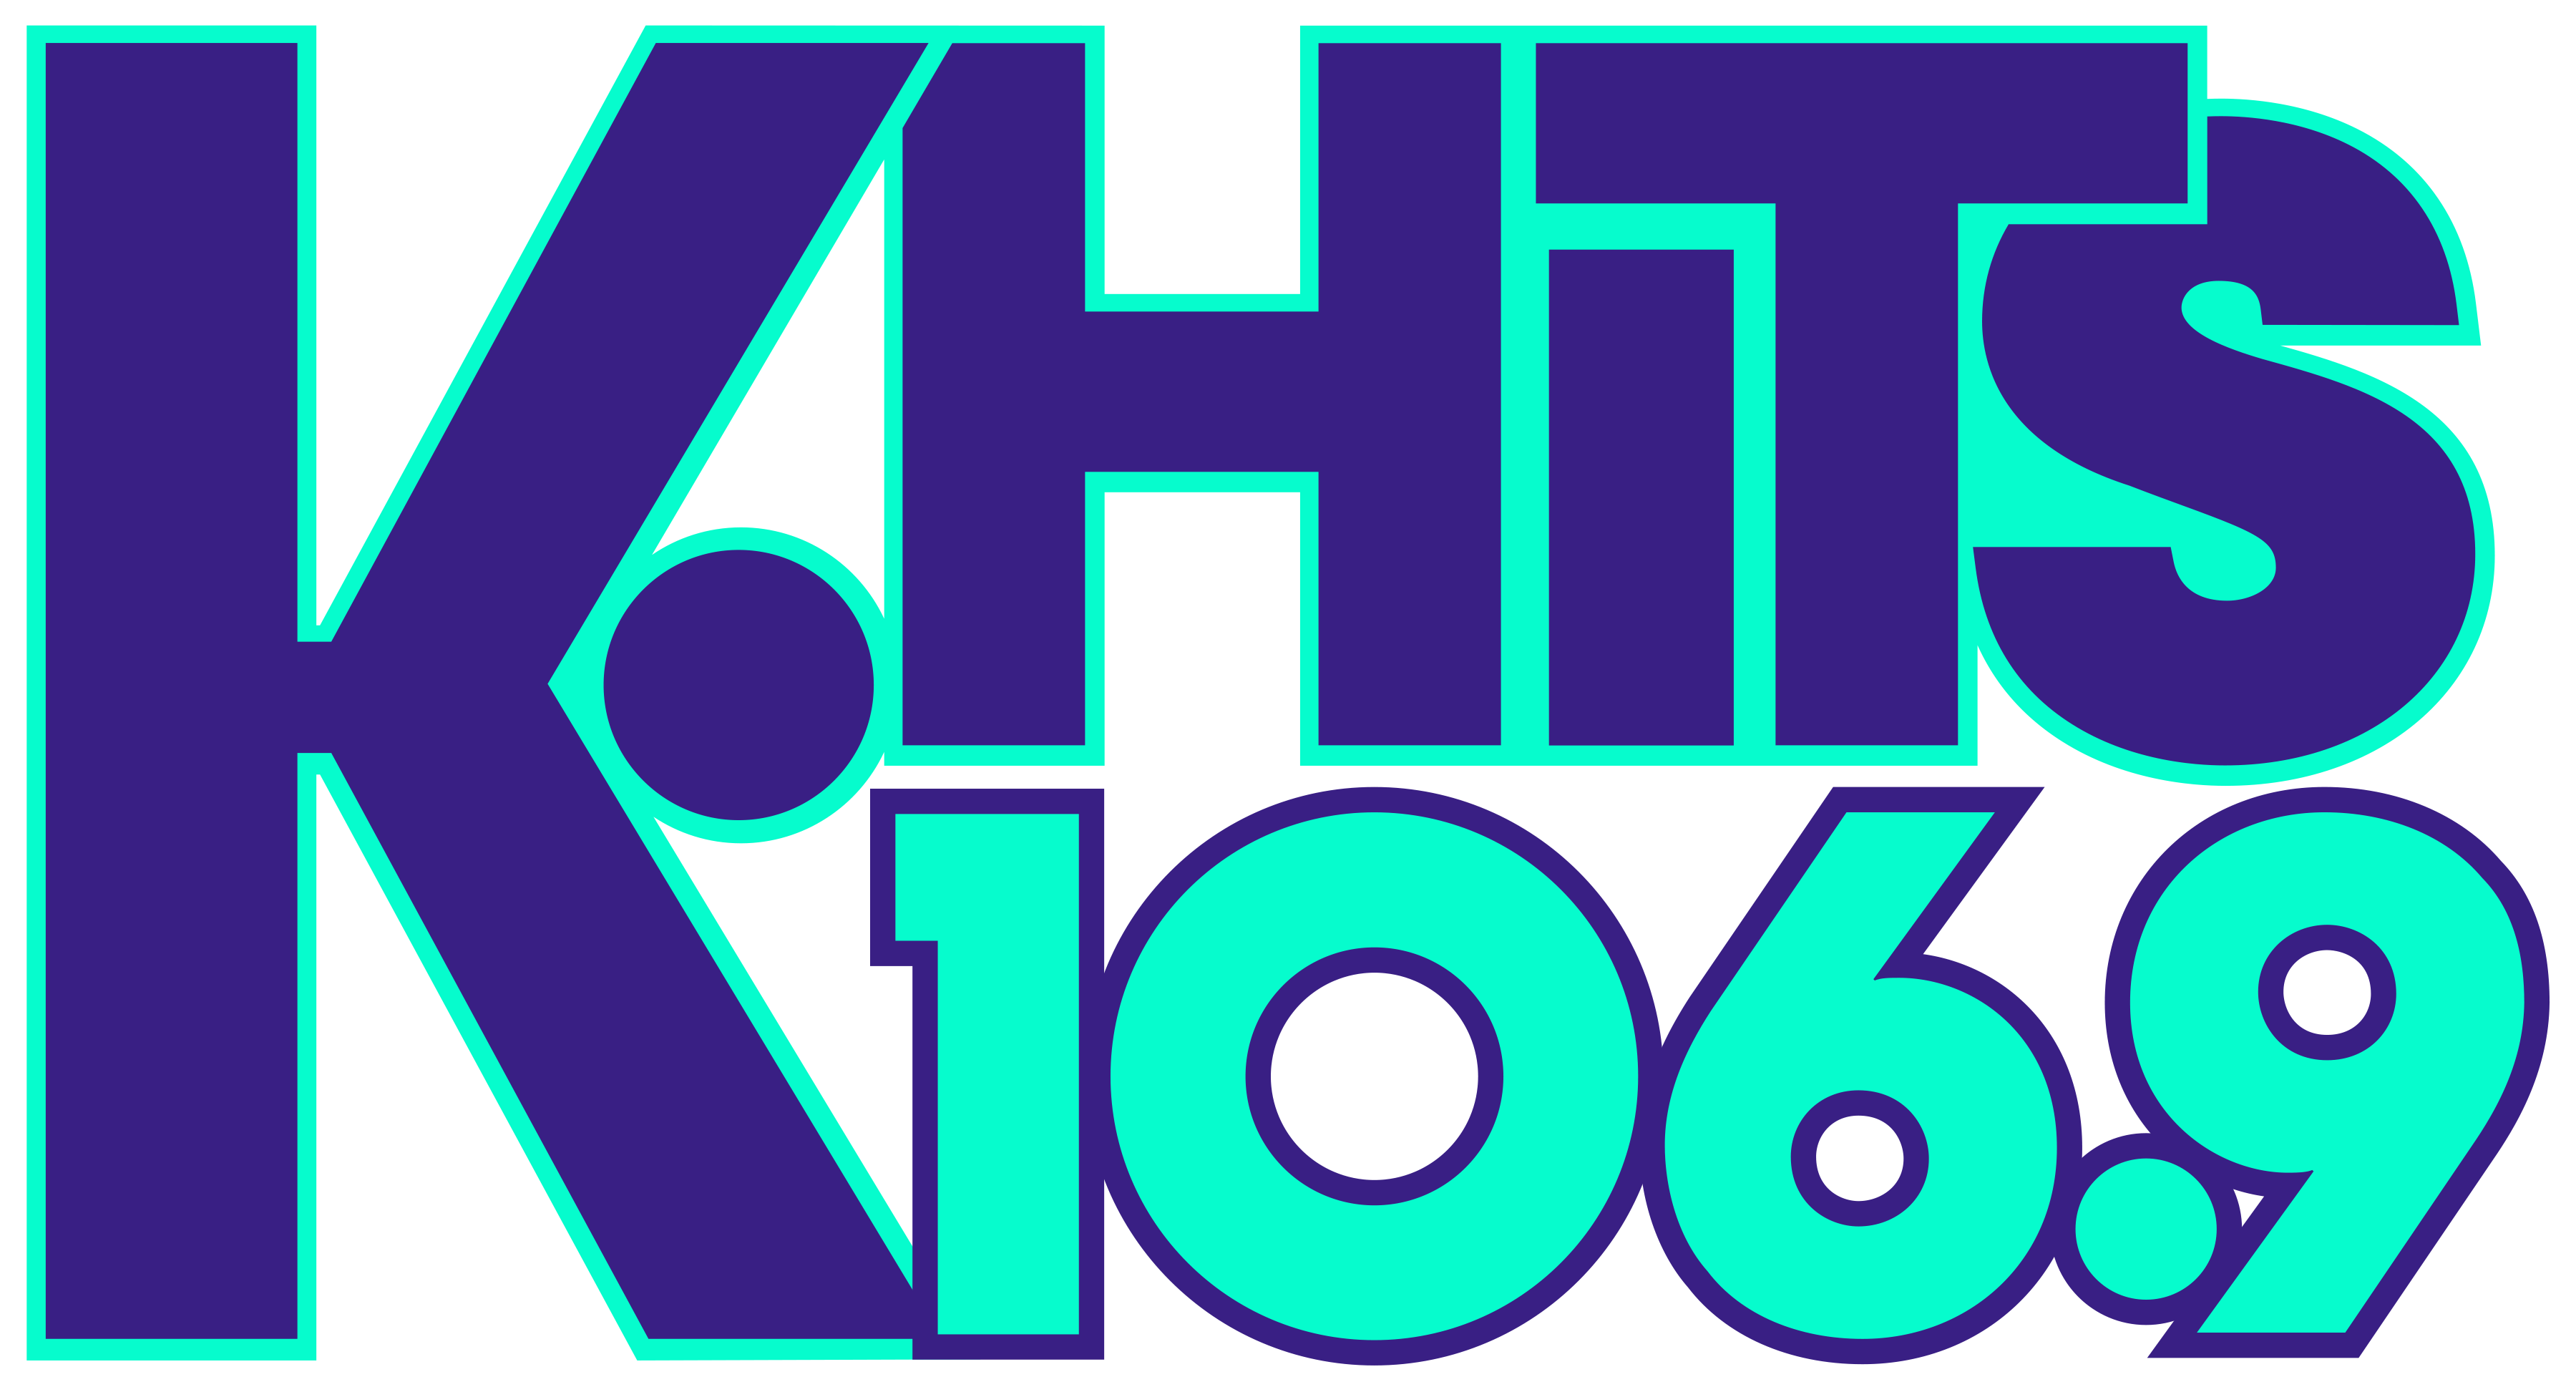 Hip hop radio stations in tampa fl - Khtt Logo